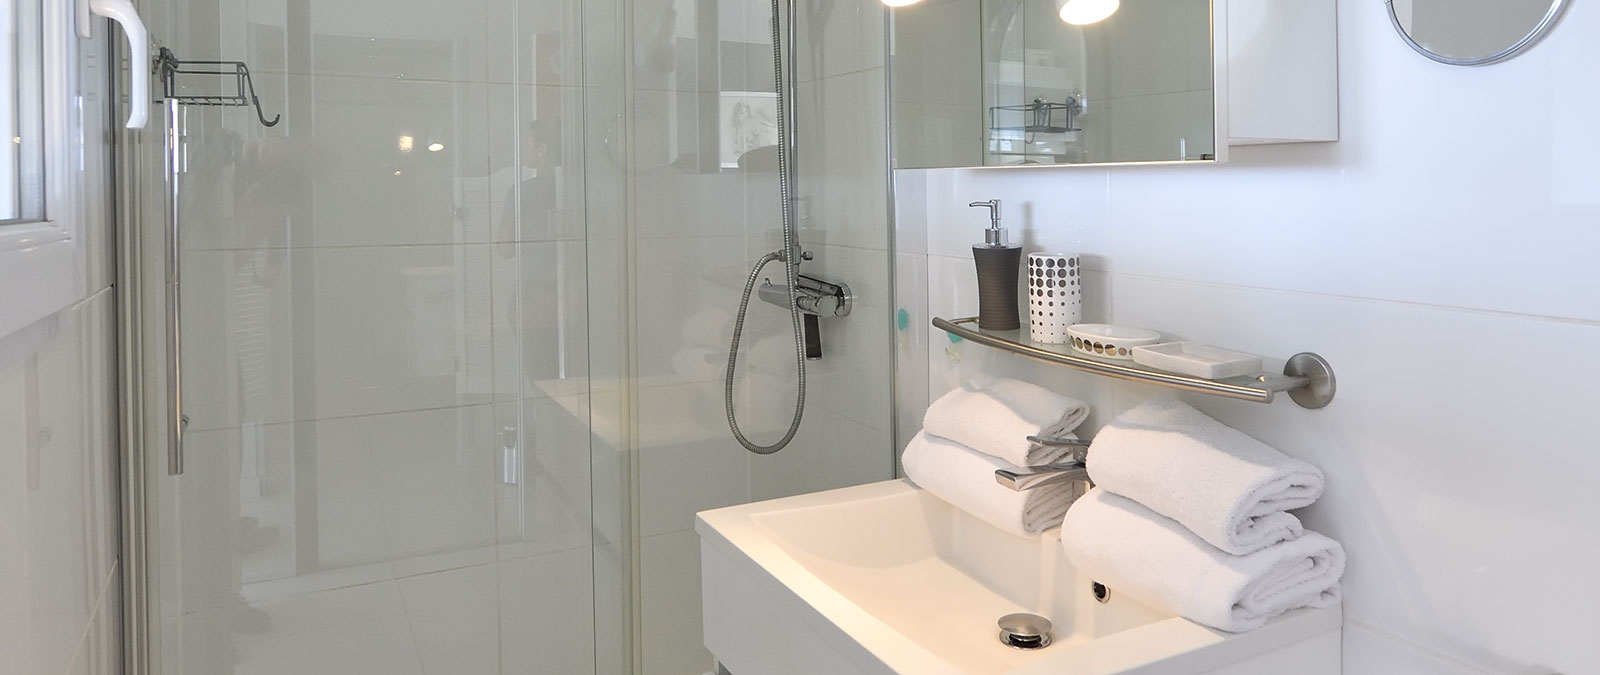 Bathroom with shower Lana rental for libertine couple